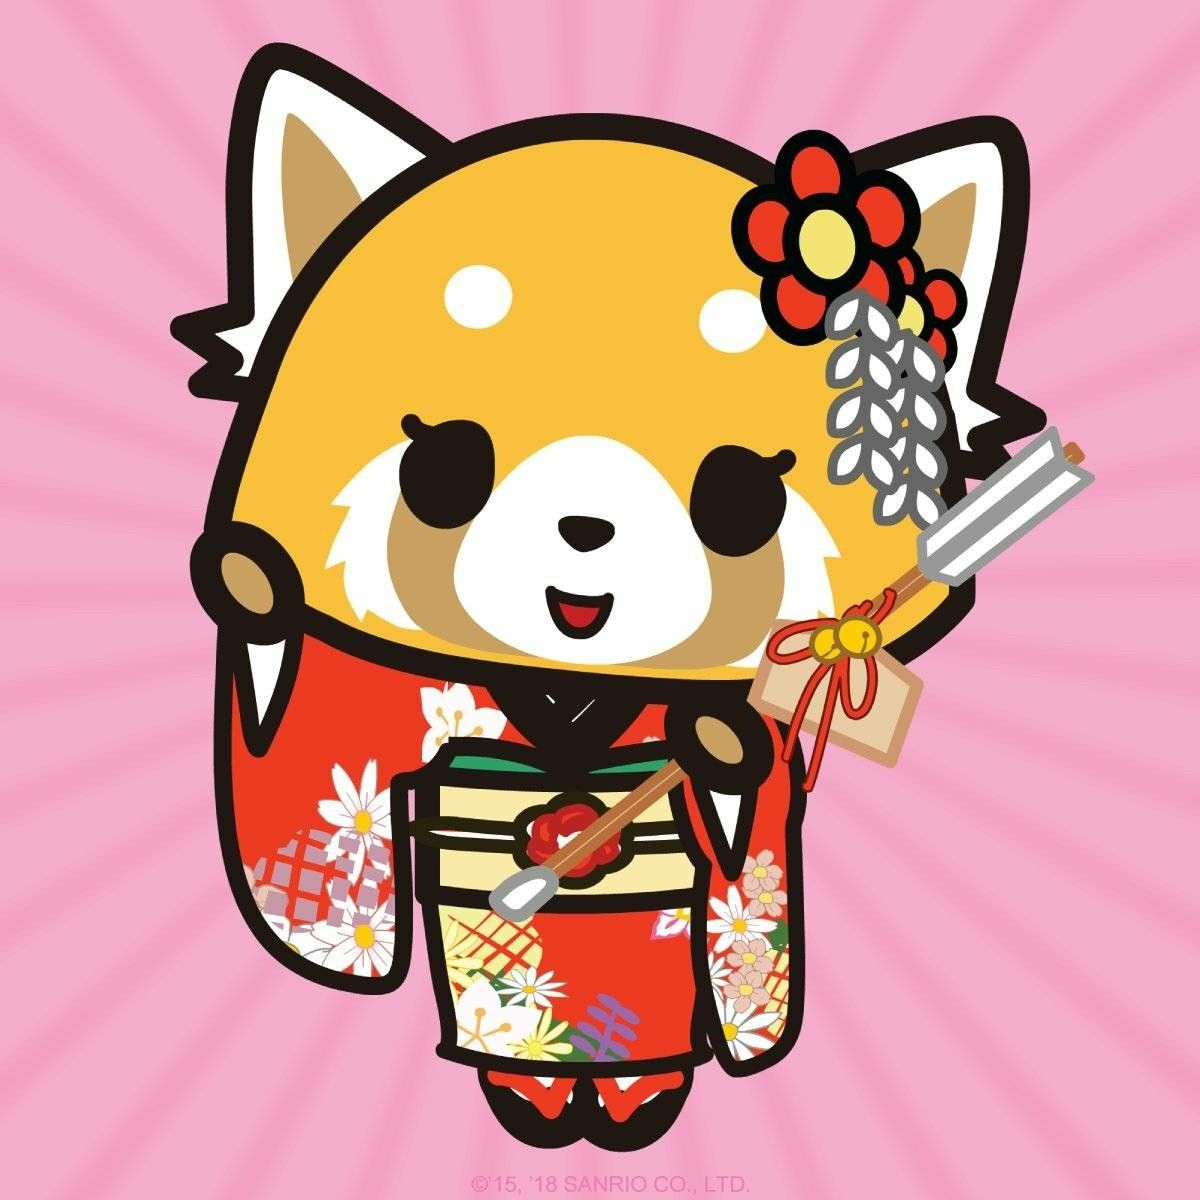 HAVE A GREAT GIRLS DAY! Also known as Hinamatsuri in Japan